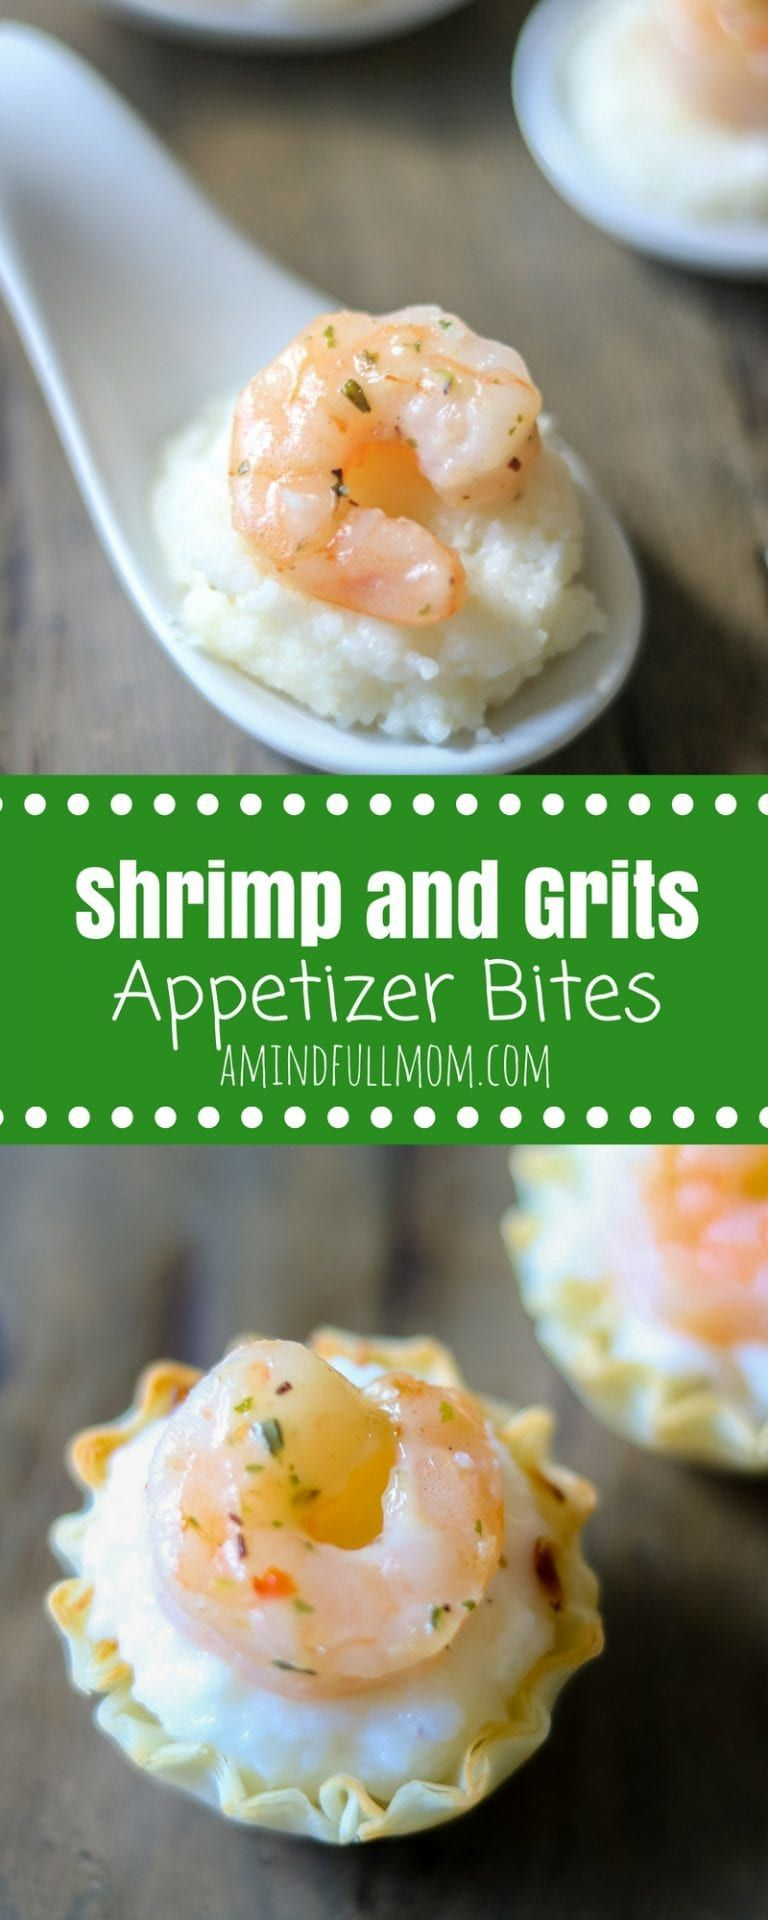 Mini Shrimp and Grits Appetizer Bites: These quick and easy shrimp and grits appetizer recipe will wow your party guests! #appetizer #shrimp #seafood #glutenfree #holidayentertaining #tapas #bitesize #shrimpandgrits